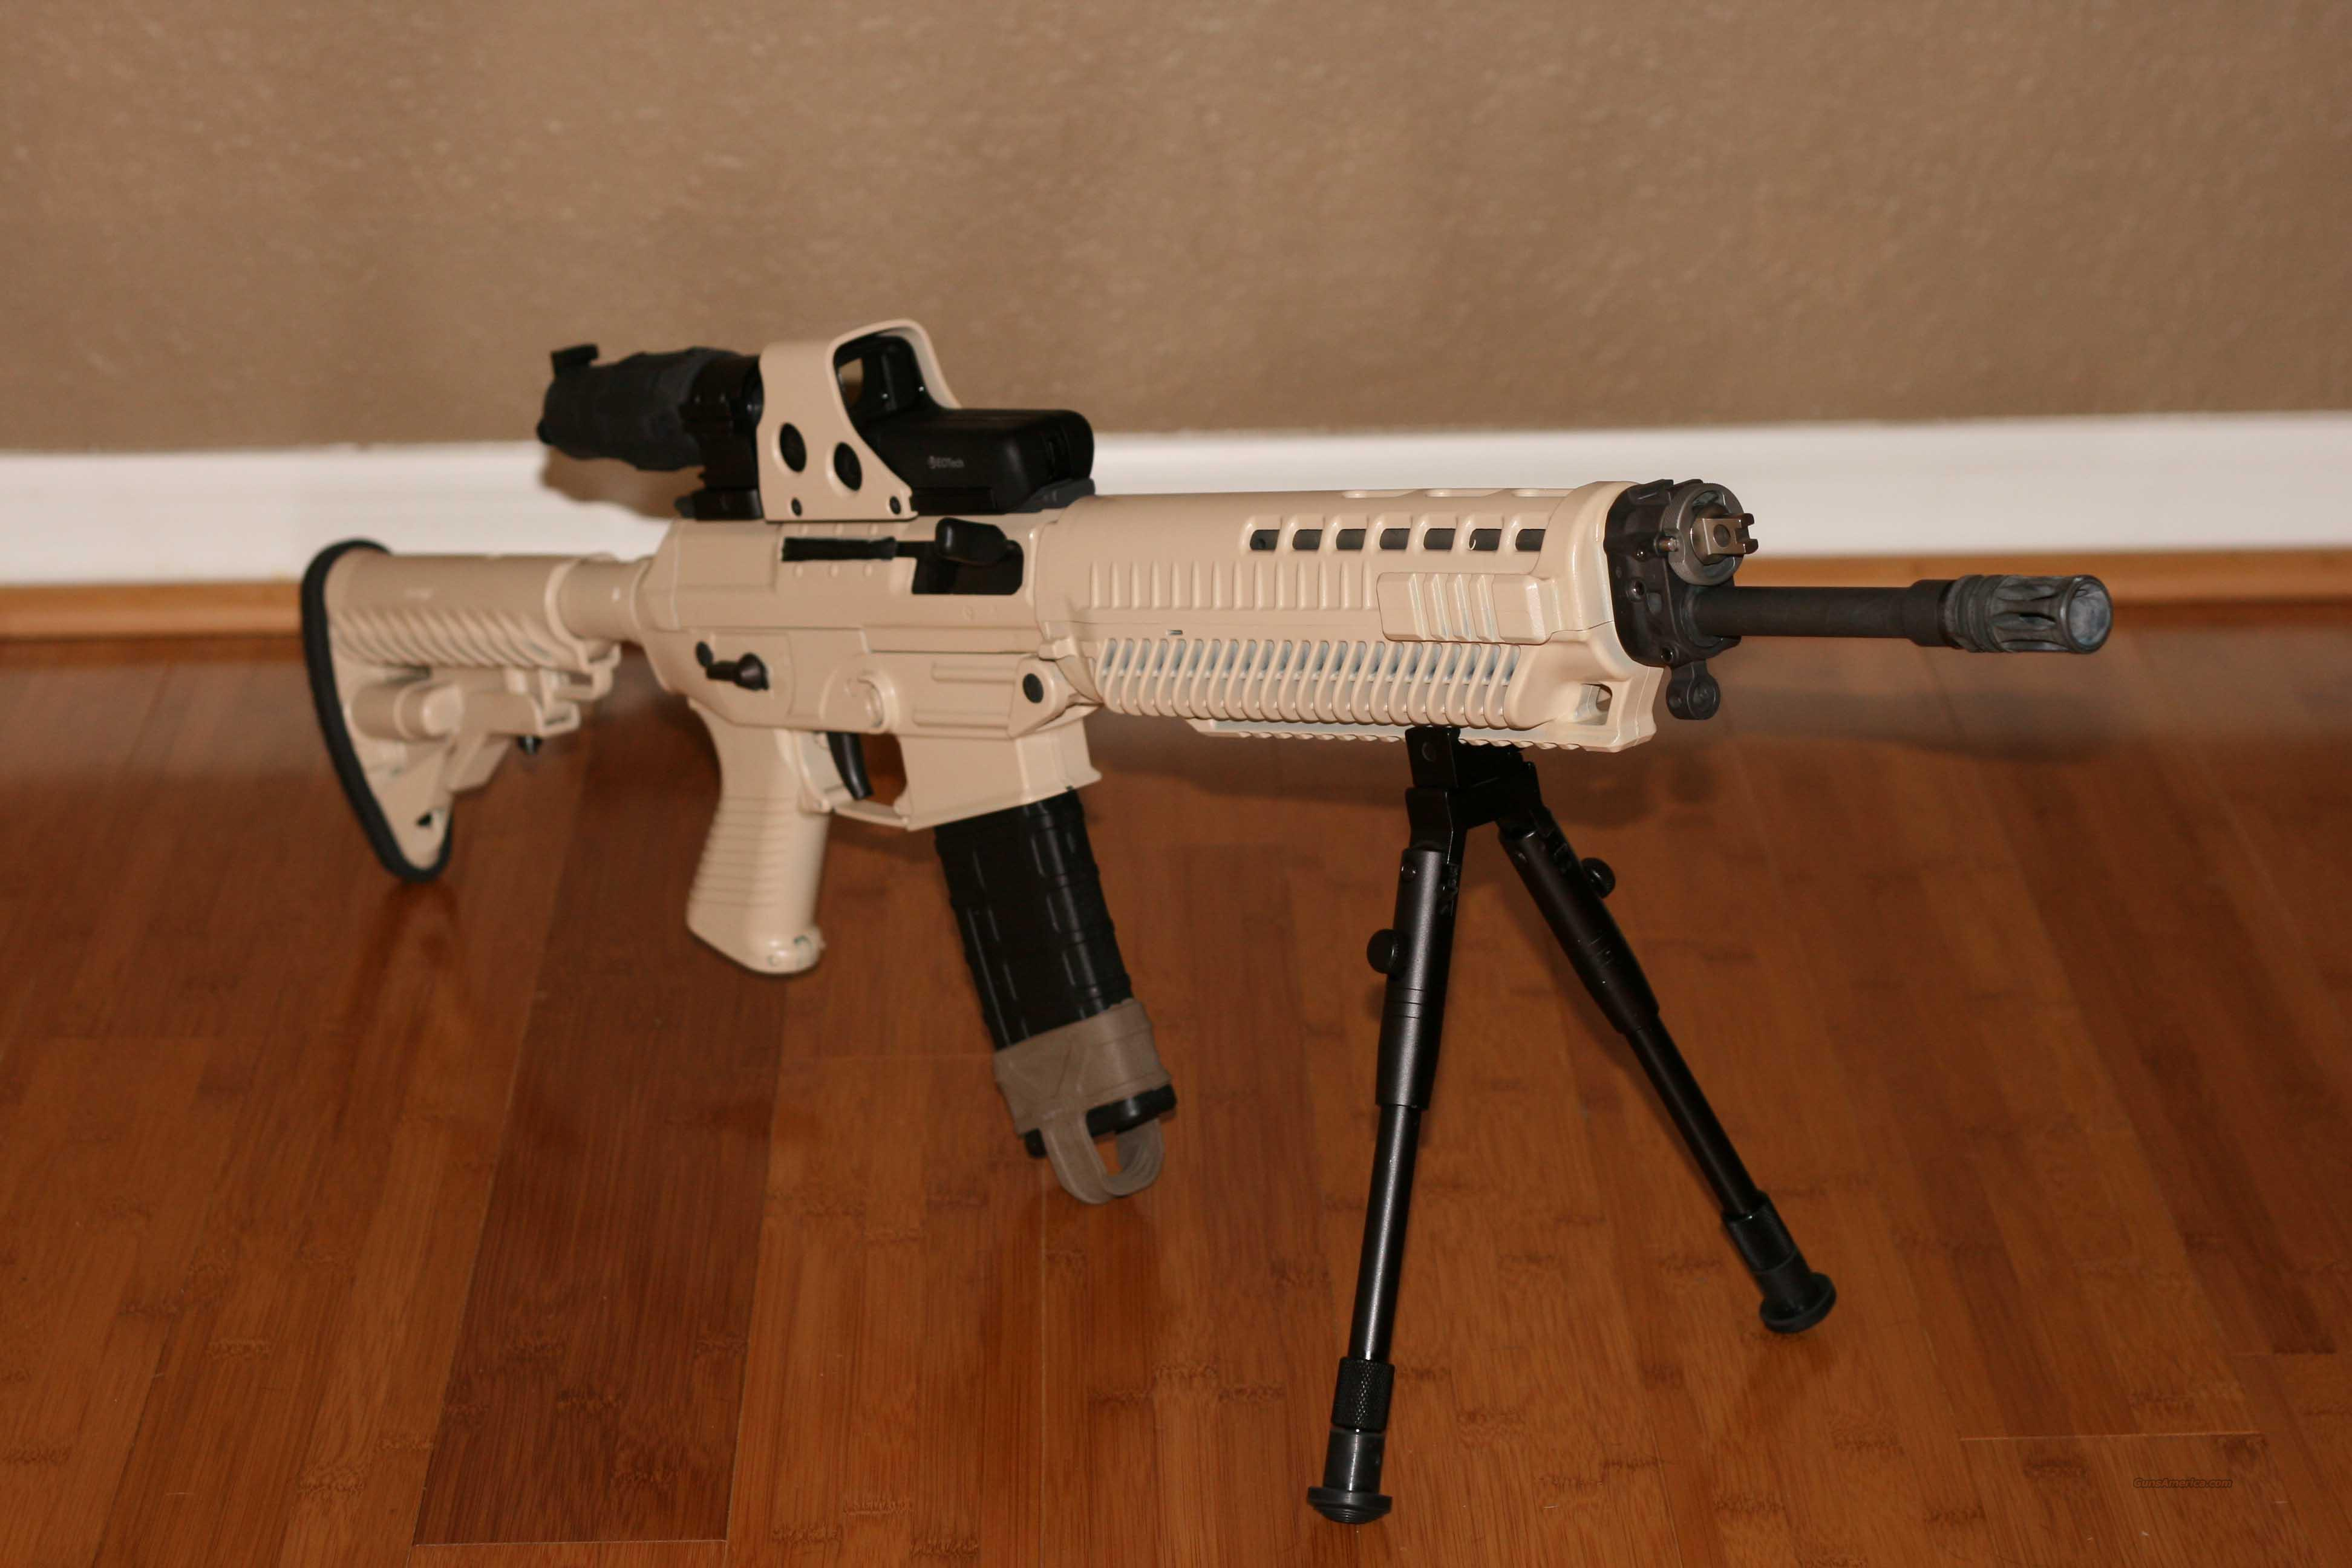 SIG 556 Duracoat Holosight and Magnifier  Guns > Rifles > Sig - Sauer/Sigarms Rifles